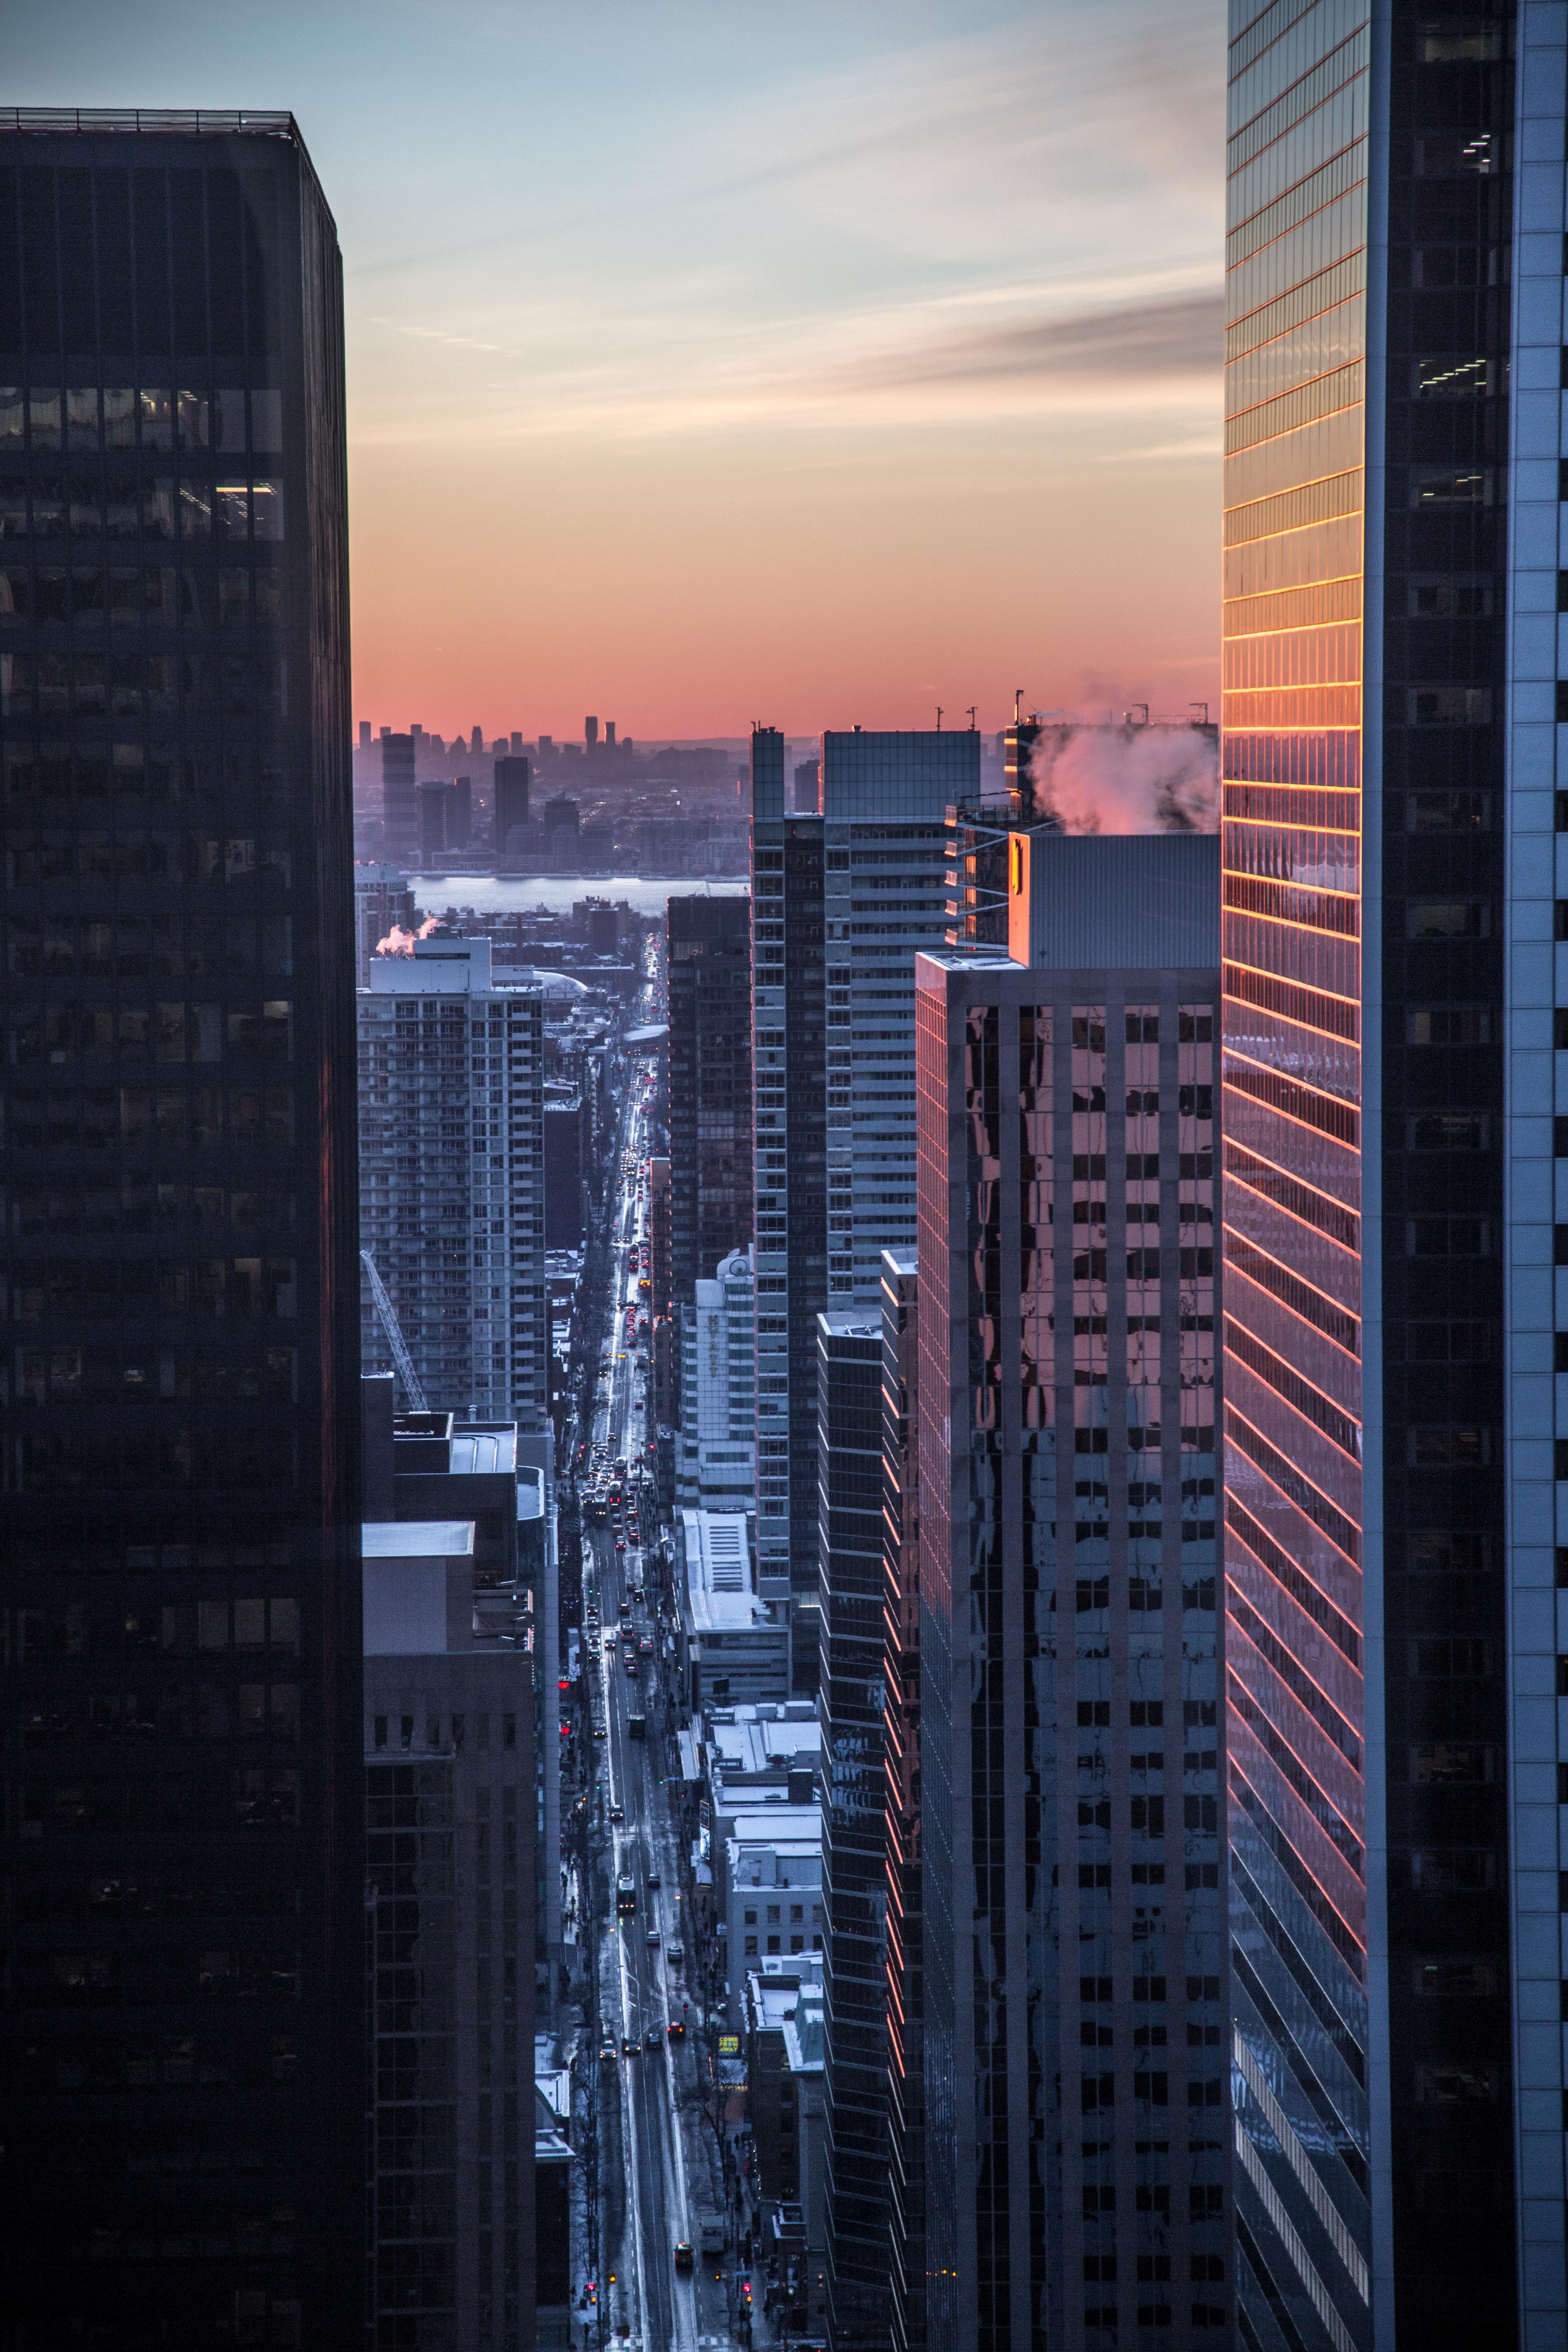 A glimpse of the sunset through with the traffic flowing beneath through the skyscrapers of a city